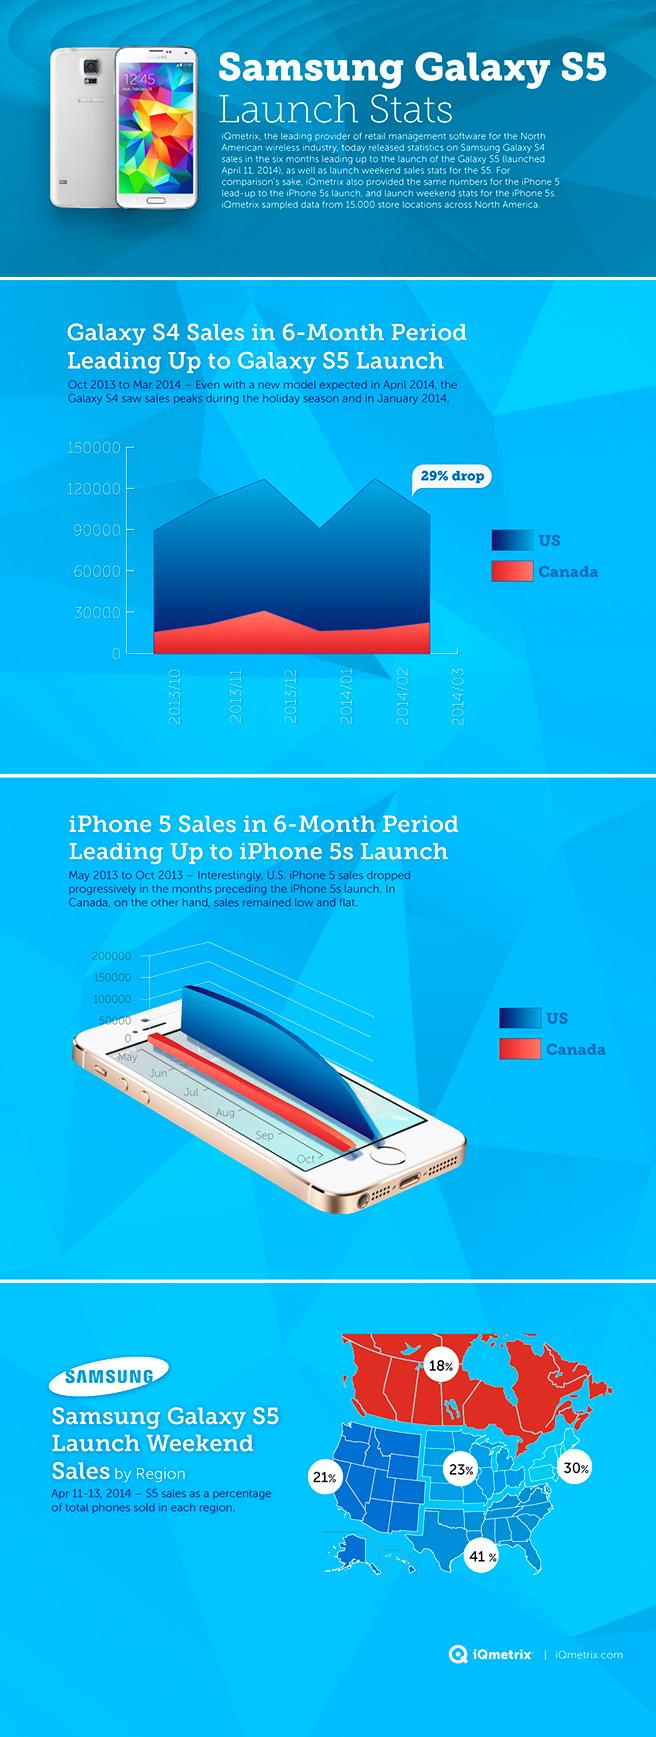 samsung_galaxys5_infographic1